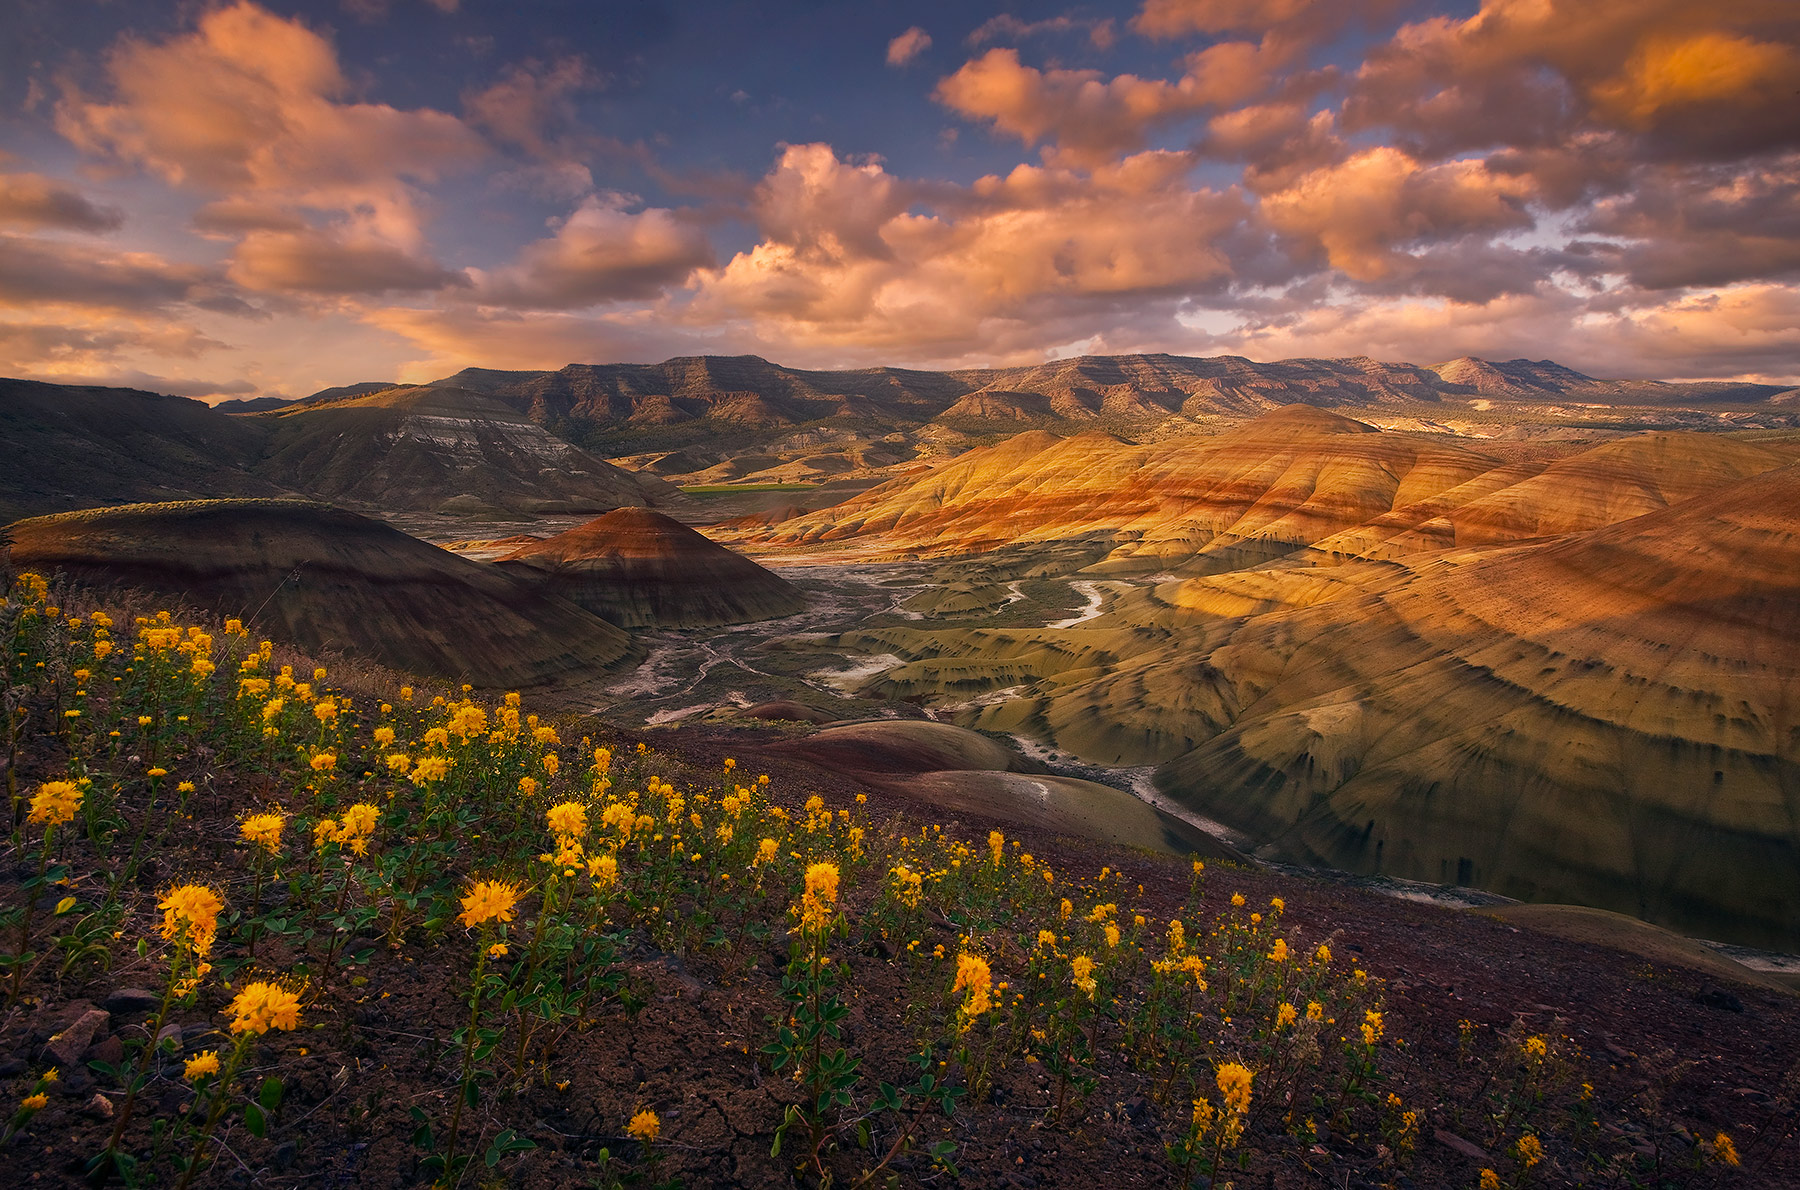 Oregon's Painted Hills National Monument comes alive with soft light, spring wildflowers and beautiful sunset skies.